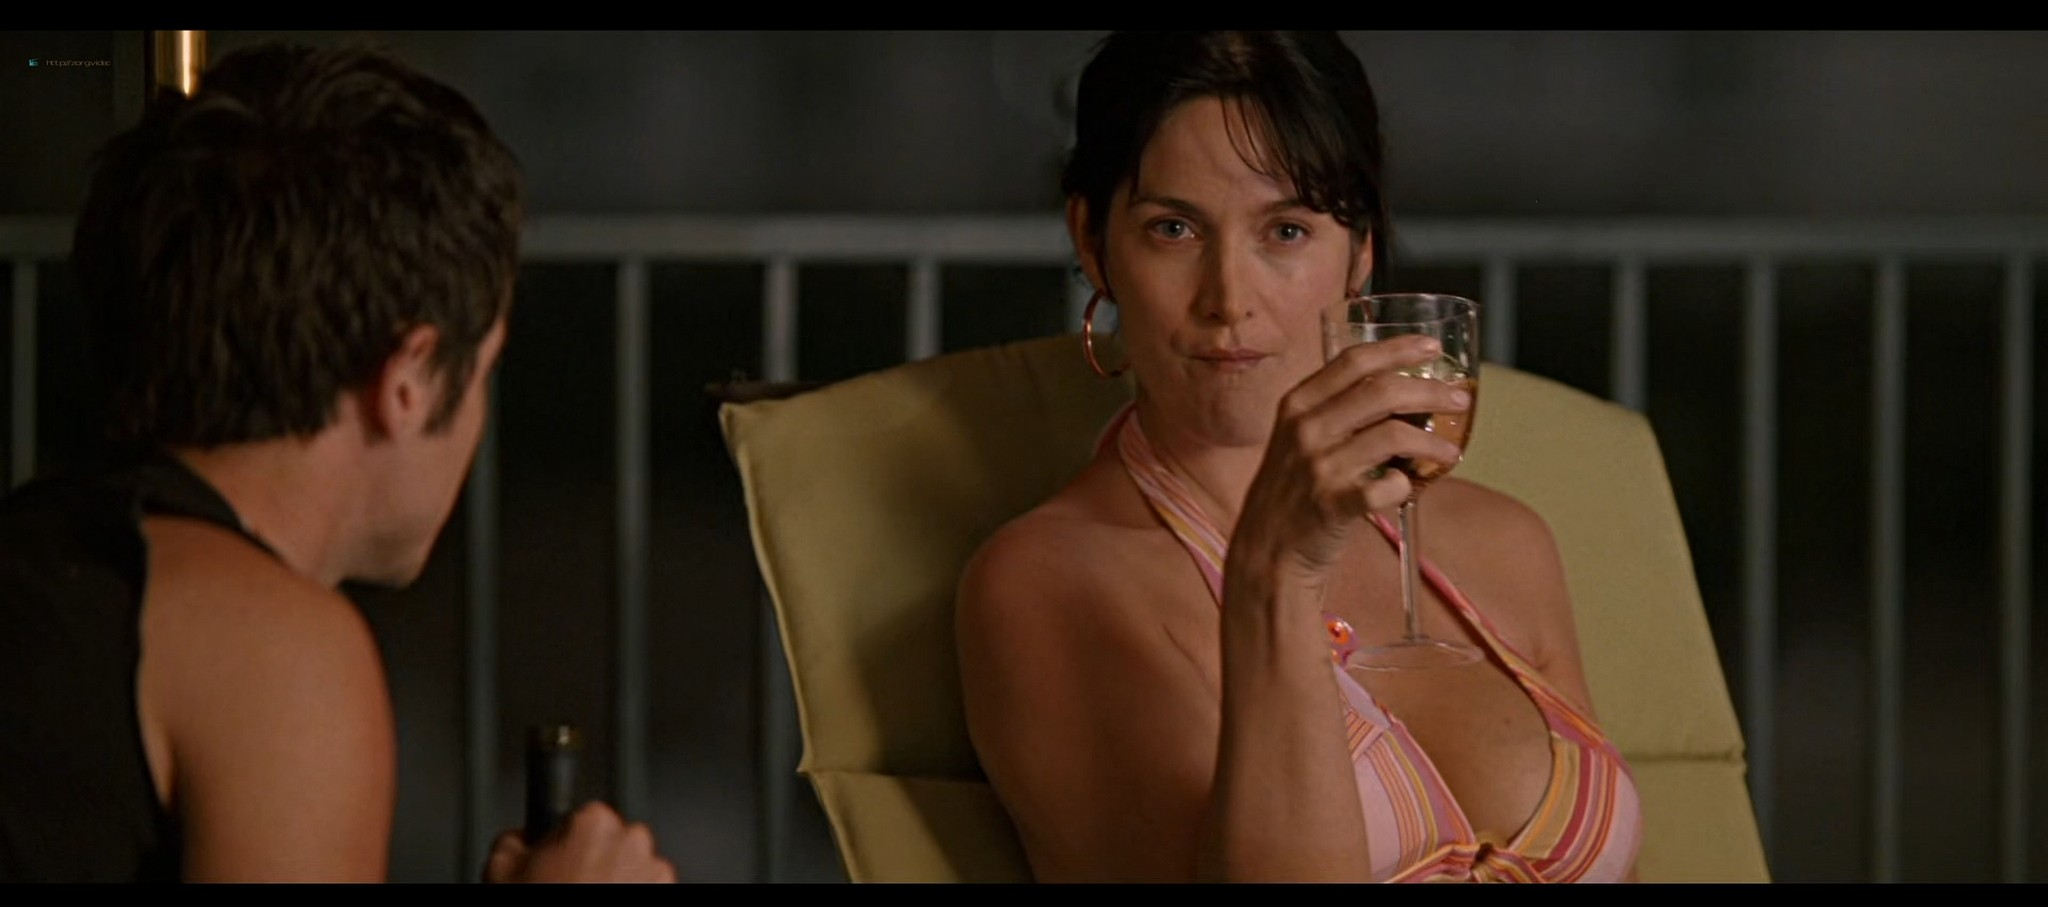 Carrie Anne Moss hot in bikini and Camilla Belle sexy The Chumscrubber 2005 HD 1080p 013